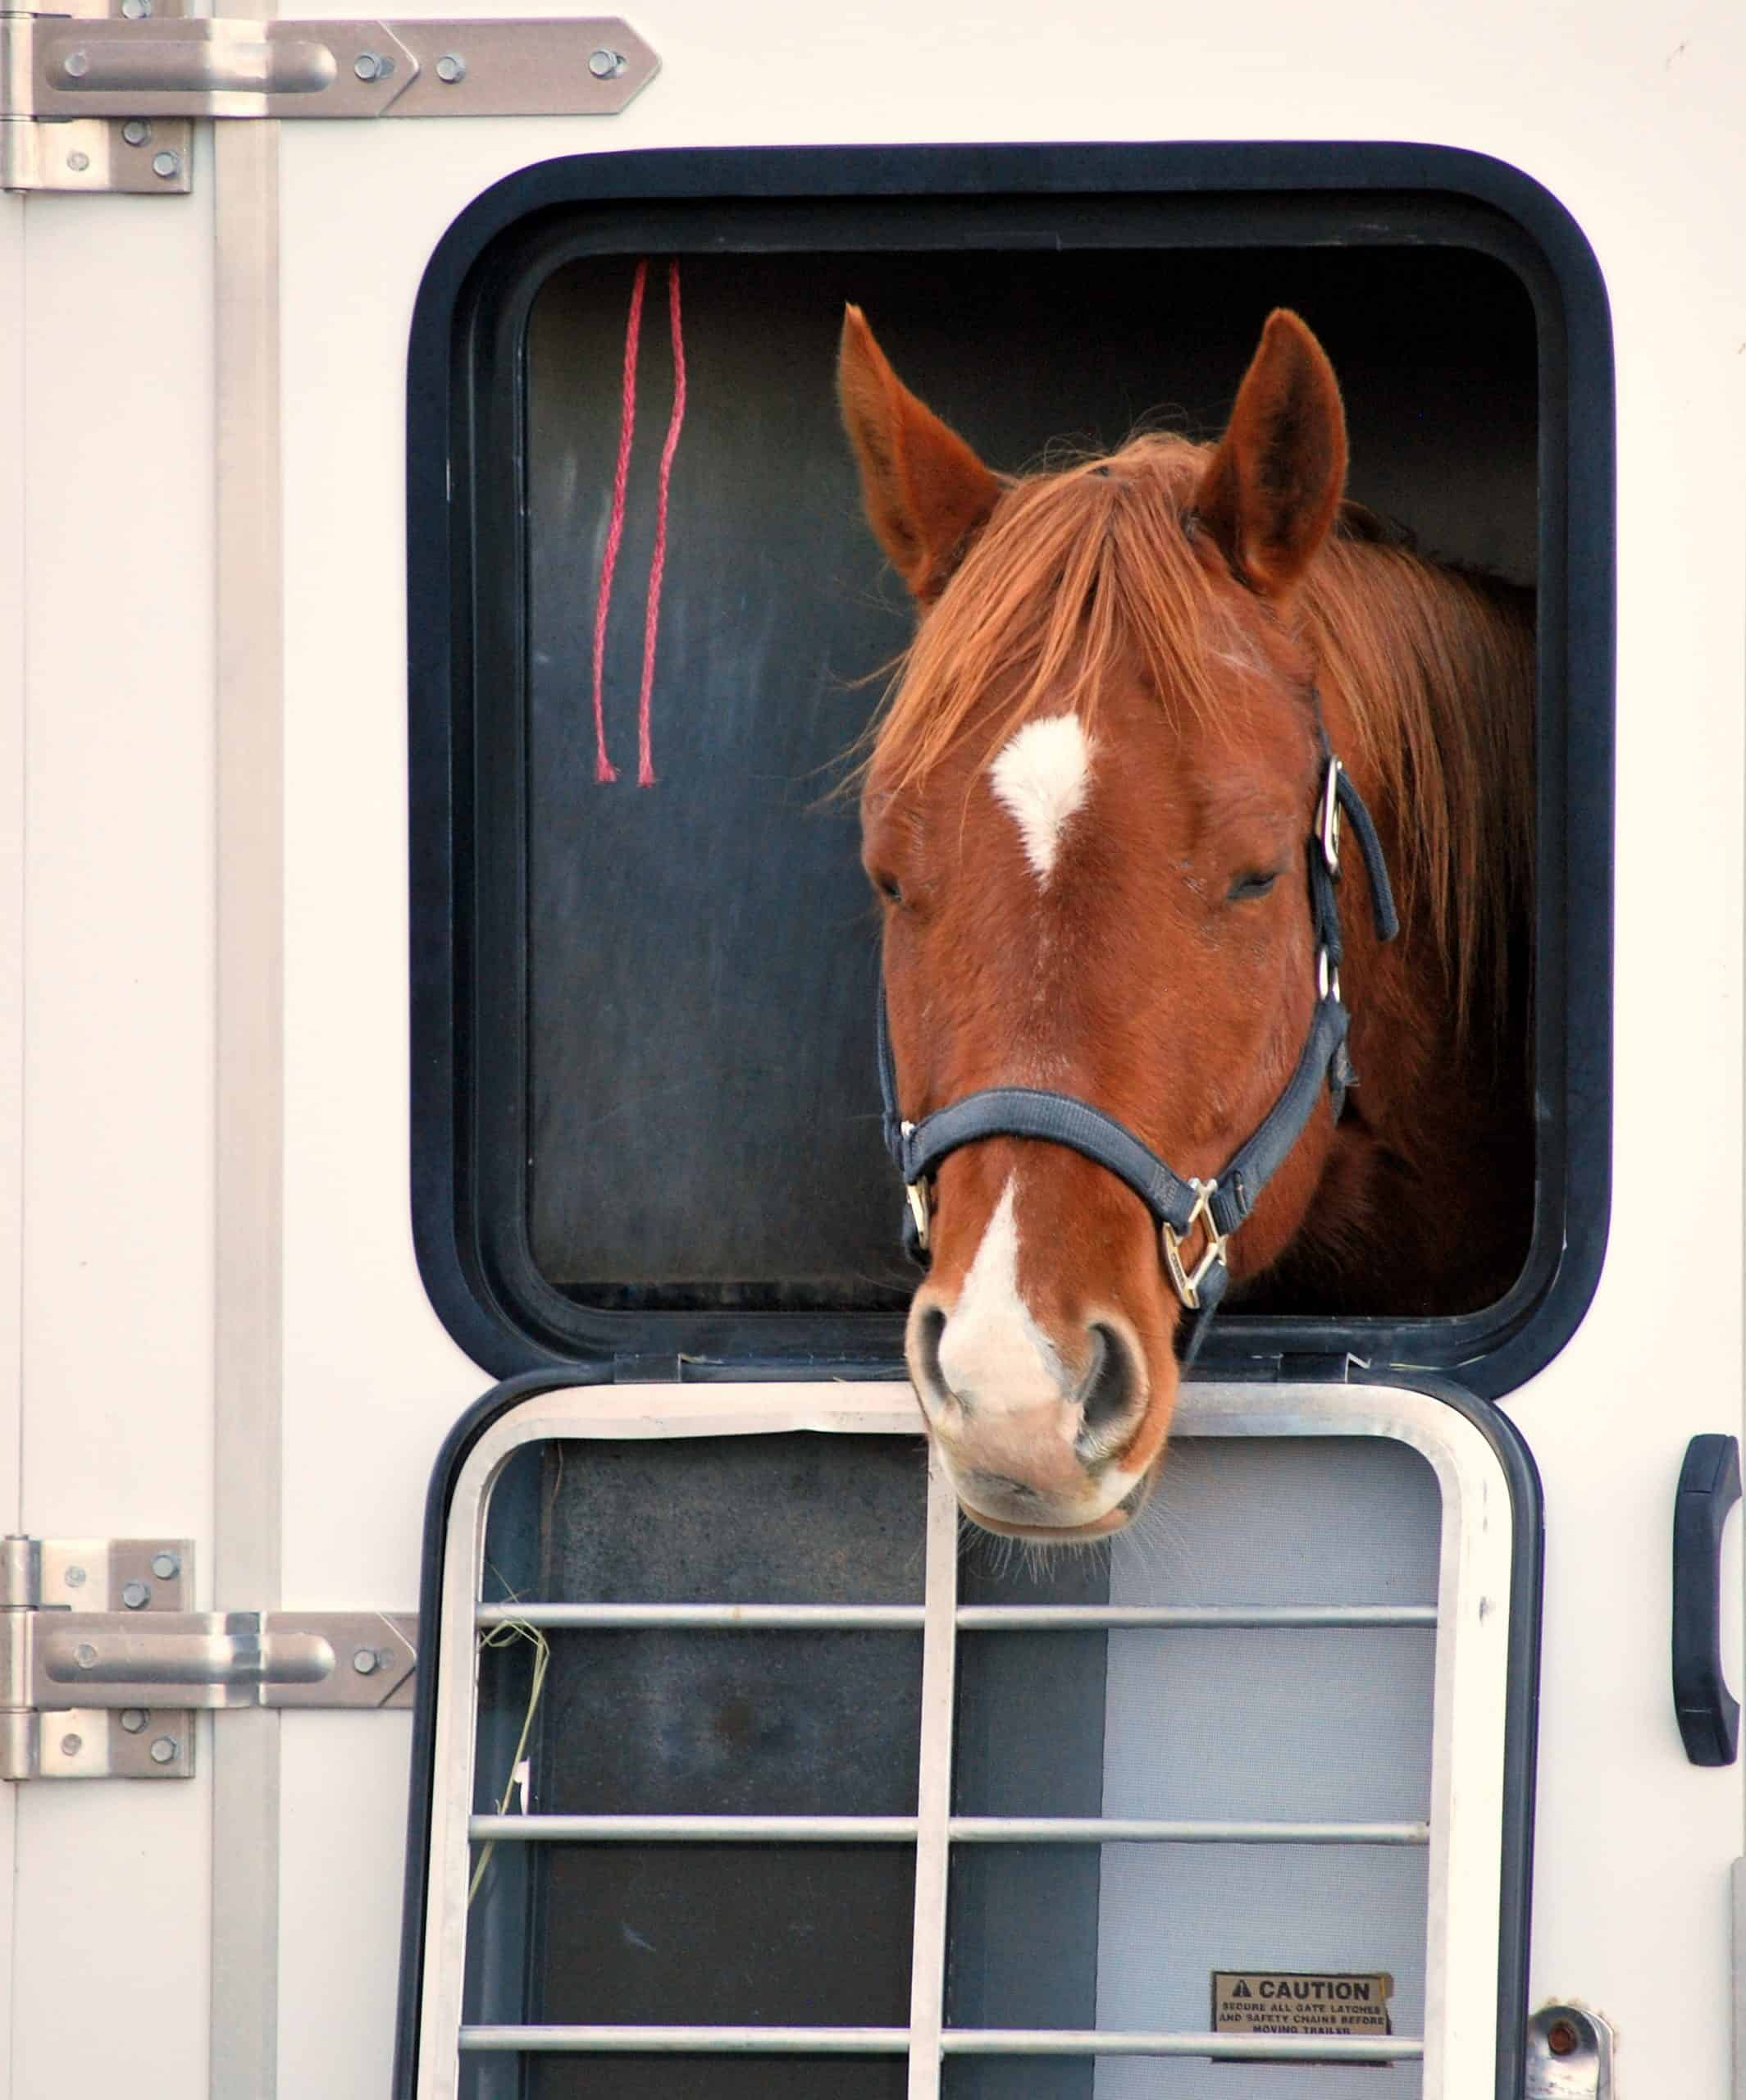 Horse portrait inside a transport trailer.